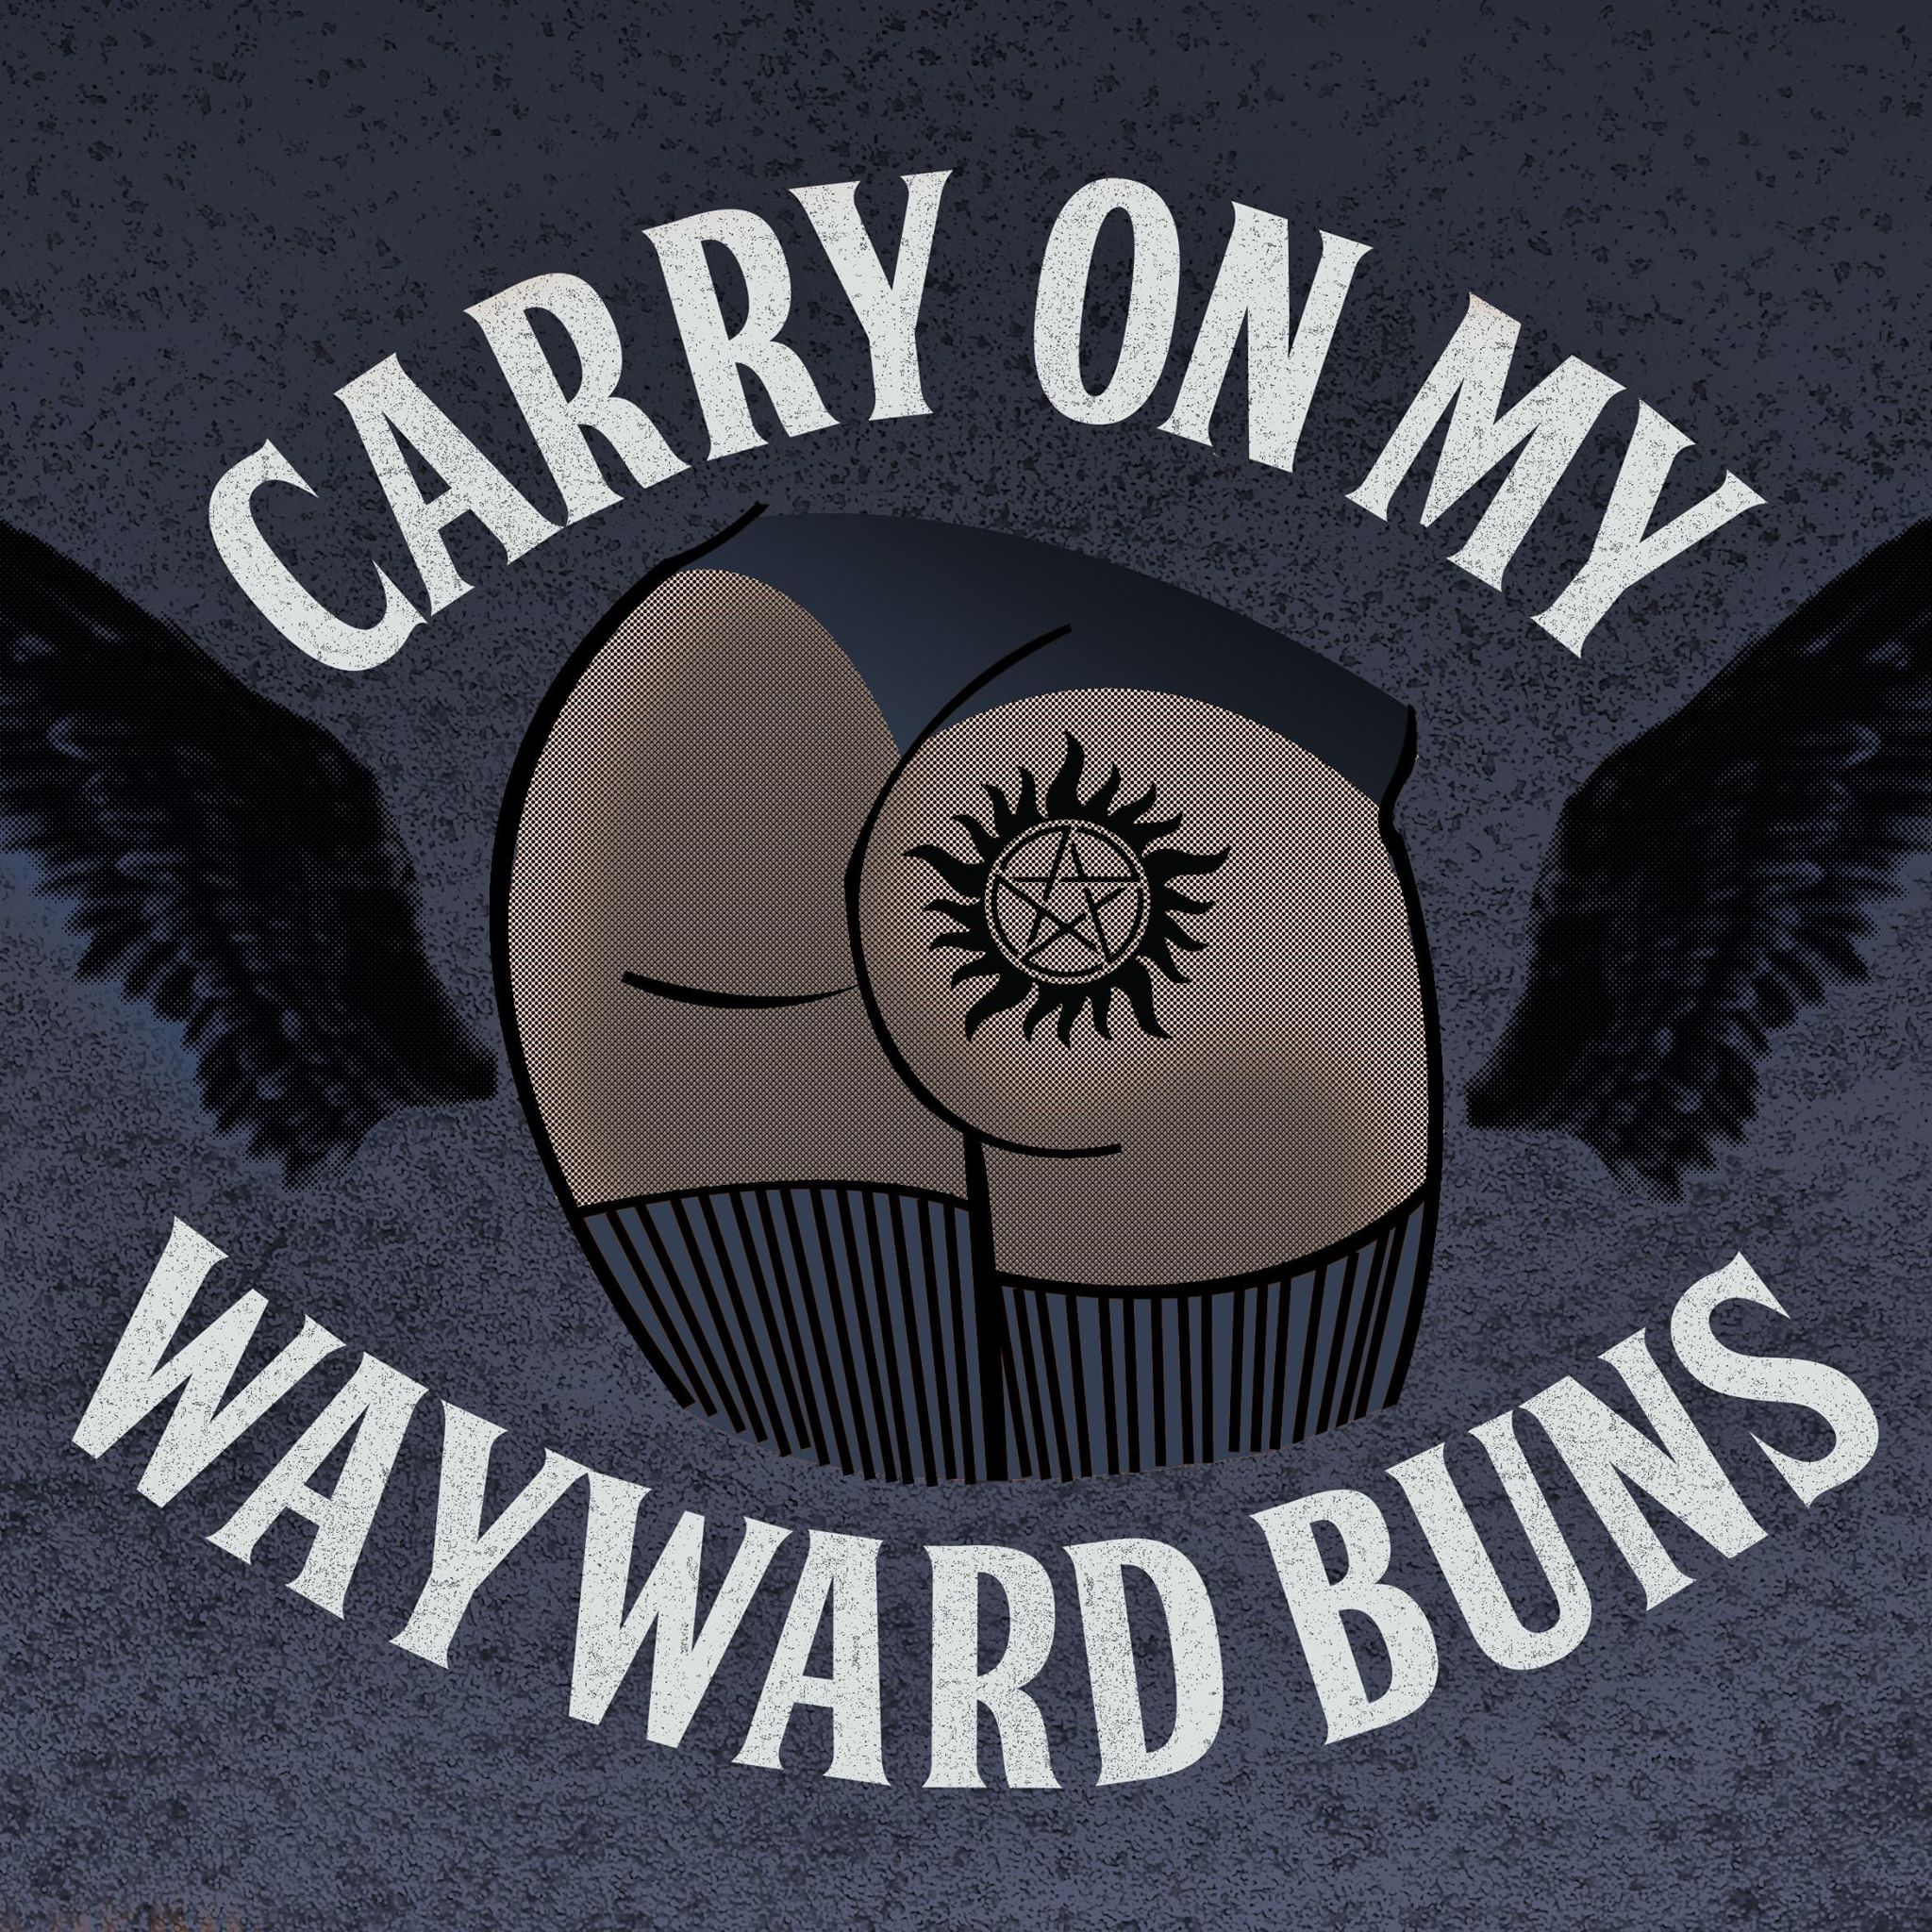 Carry On My Wayward Buns - A Tribute to Supernatural